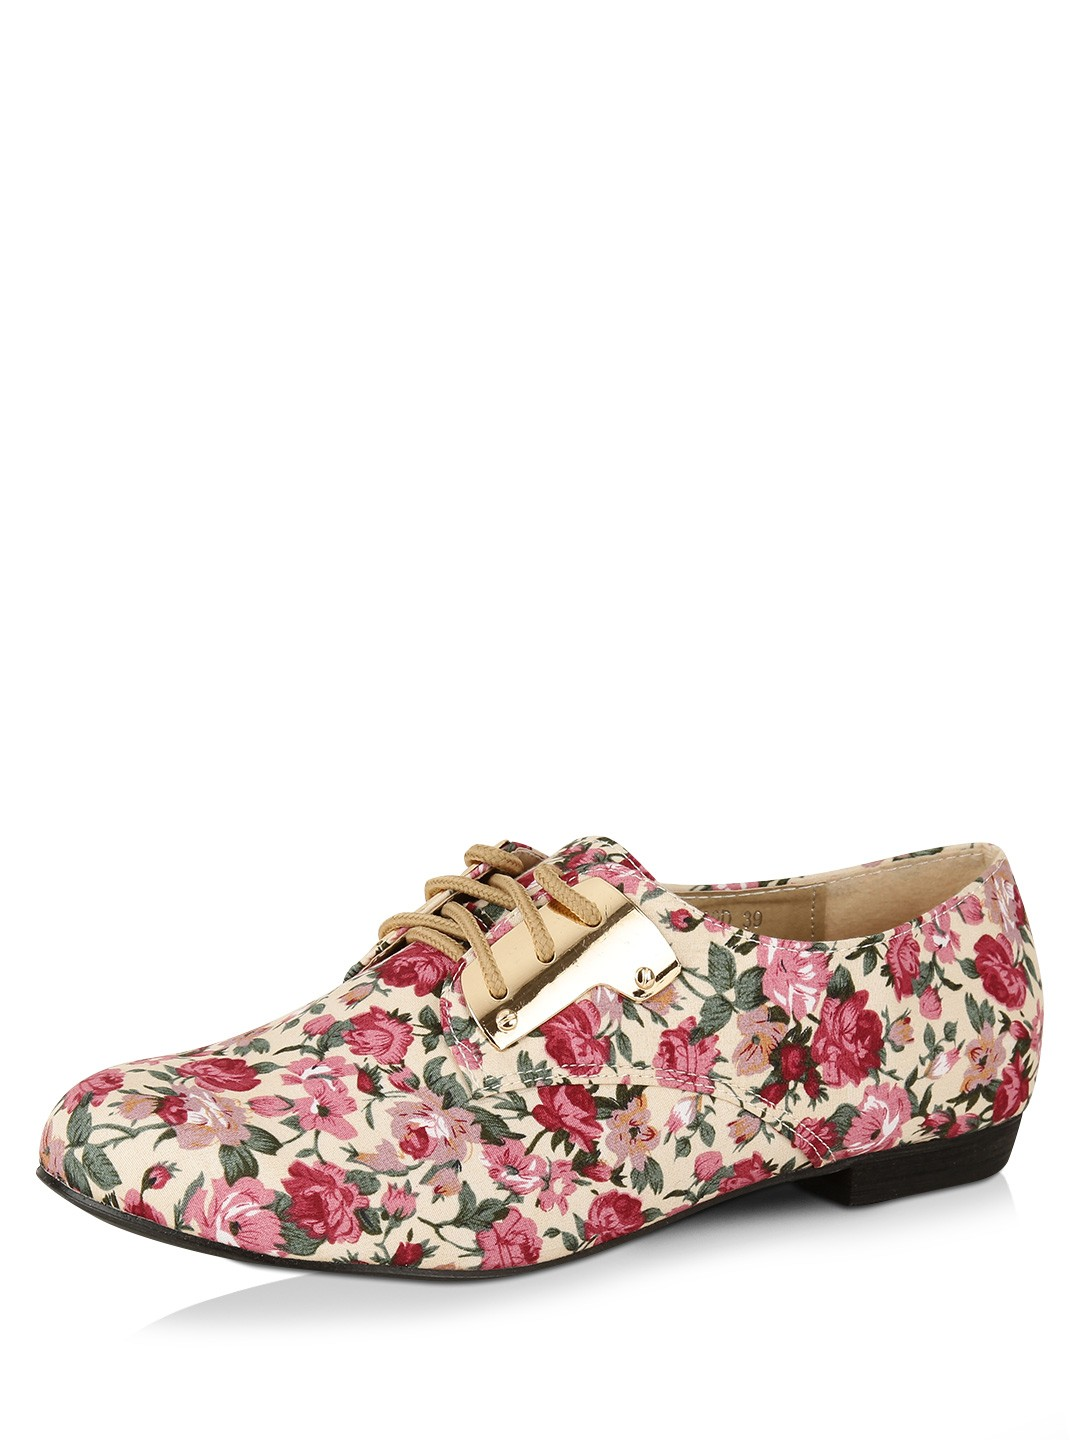 Buy My Foot Floral Floral Print Flat Shoes for Girls Online